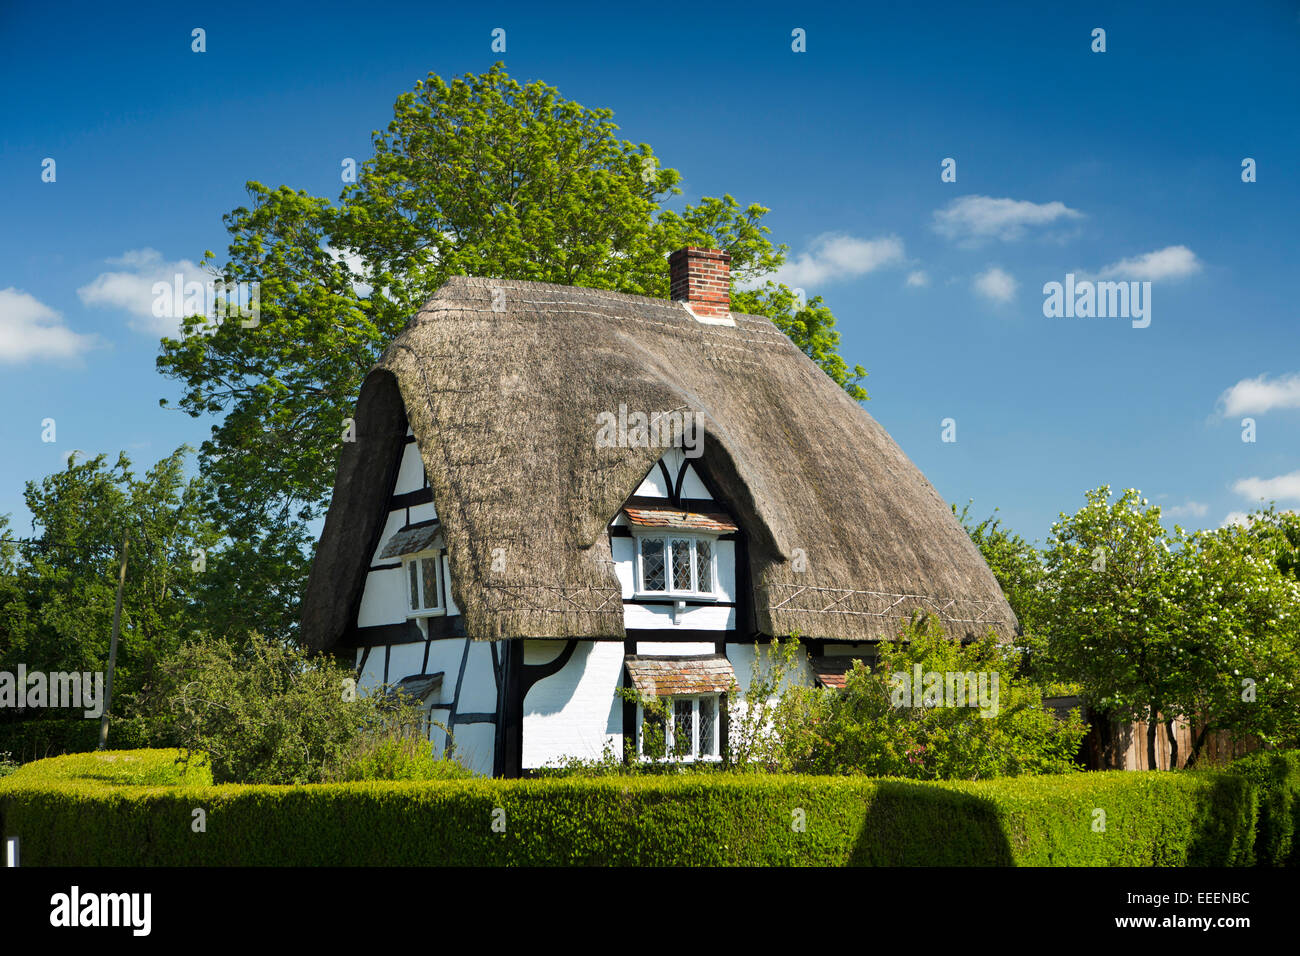 UK, England, Wiltshire, Vale of Pewsey, Bishop Cannings, idyllic timber framed thatched country cottage - Stock Image